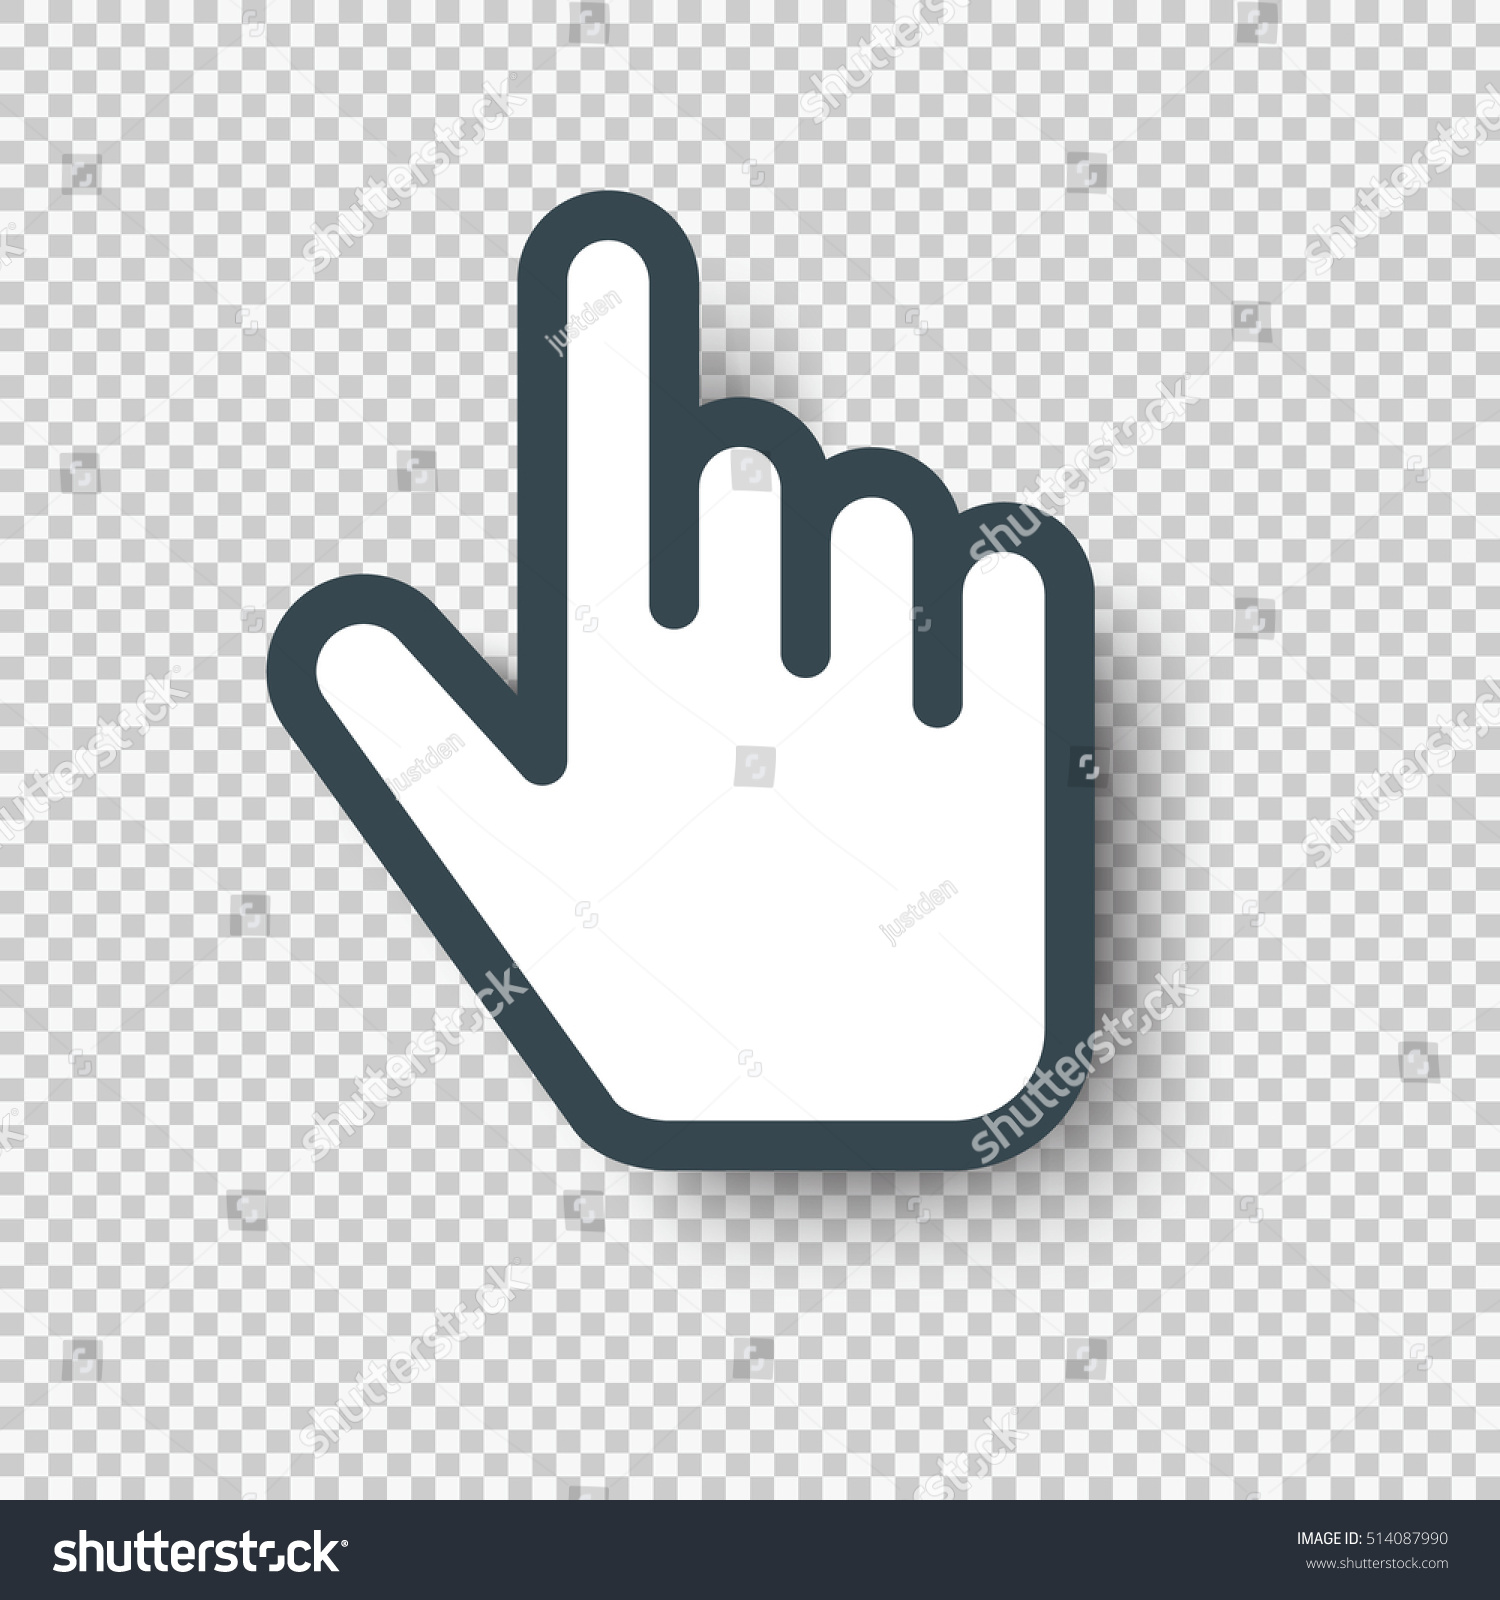 Freebies hand cursor